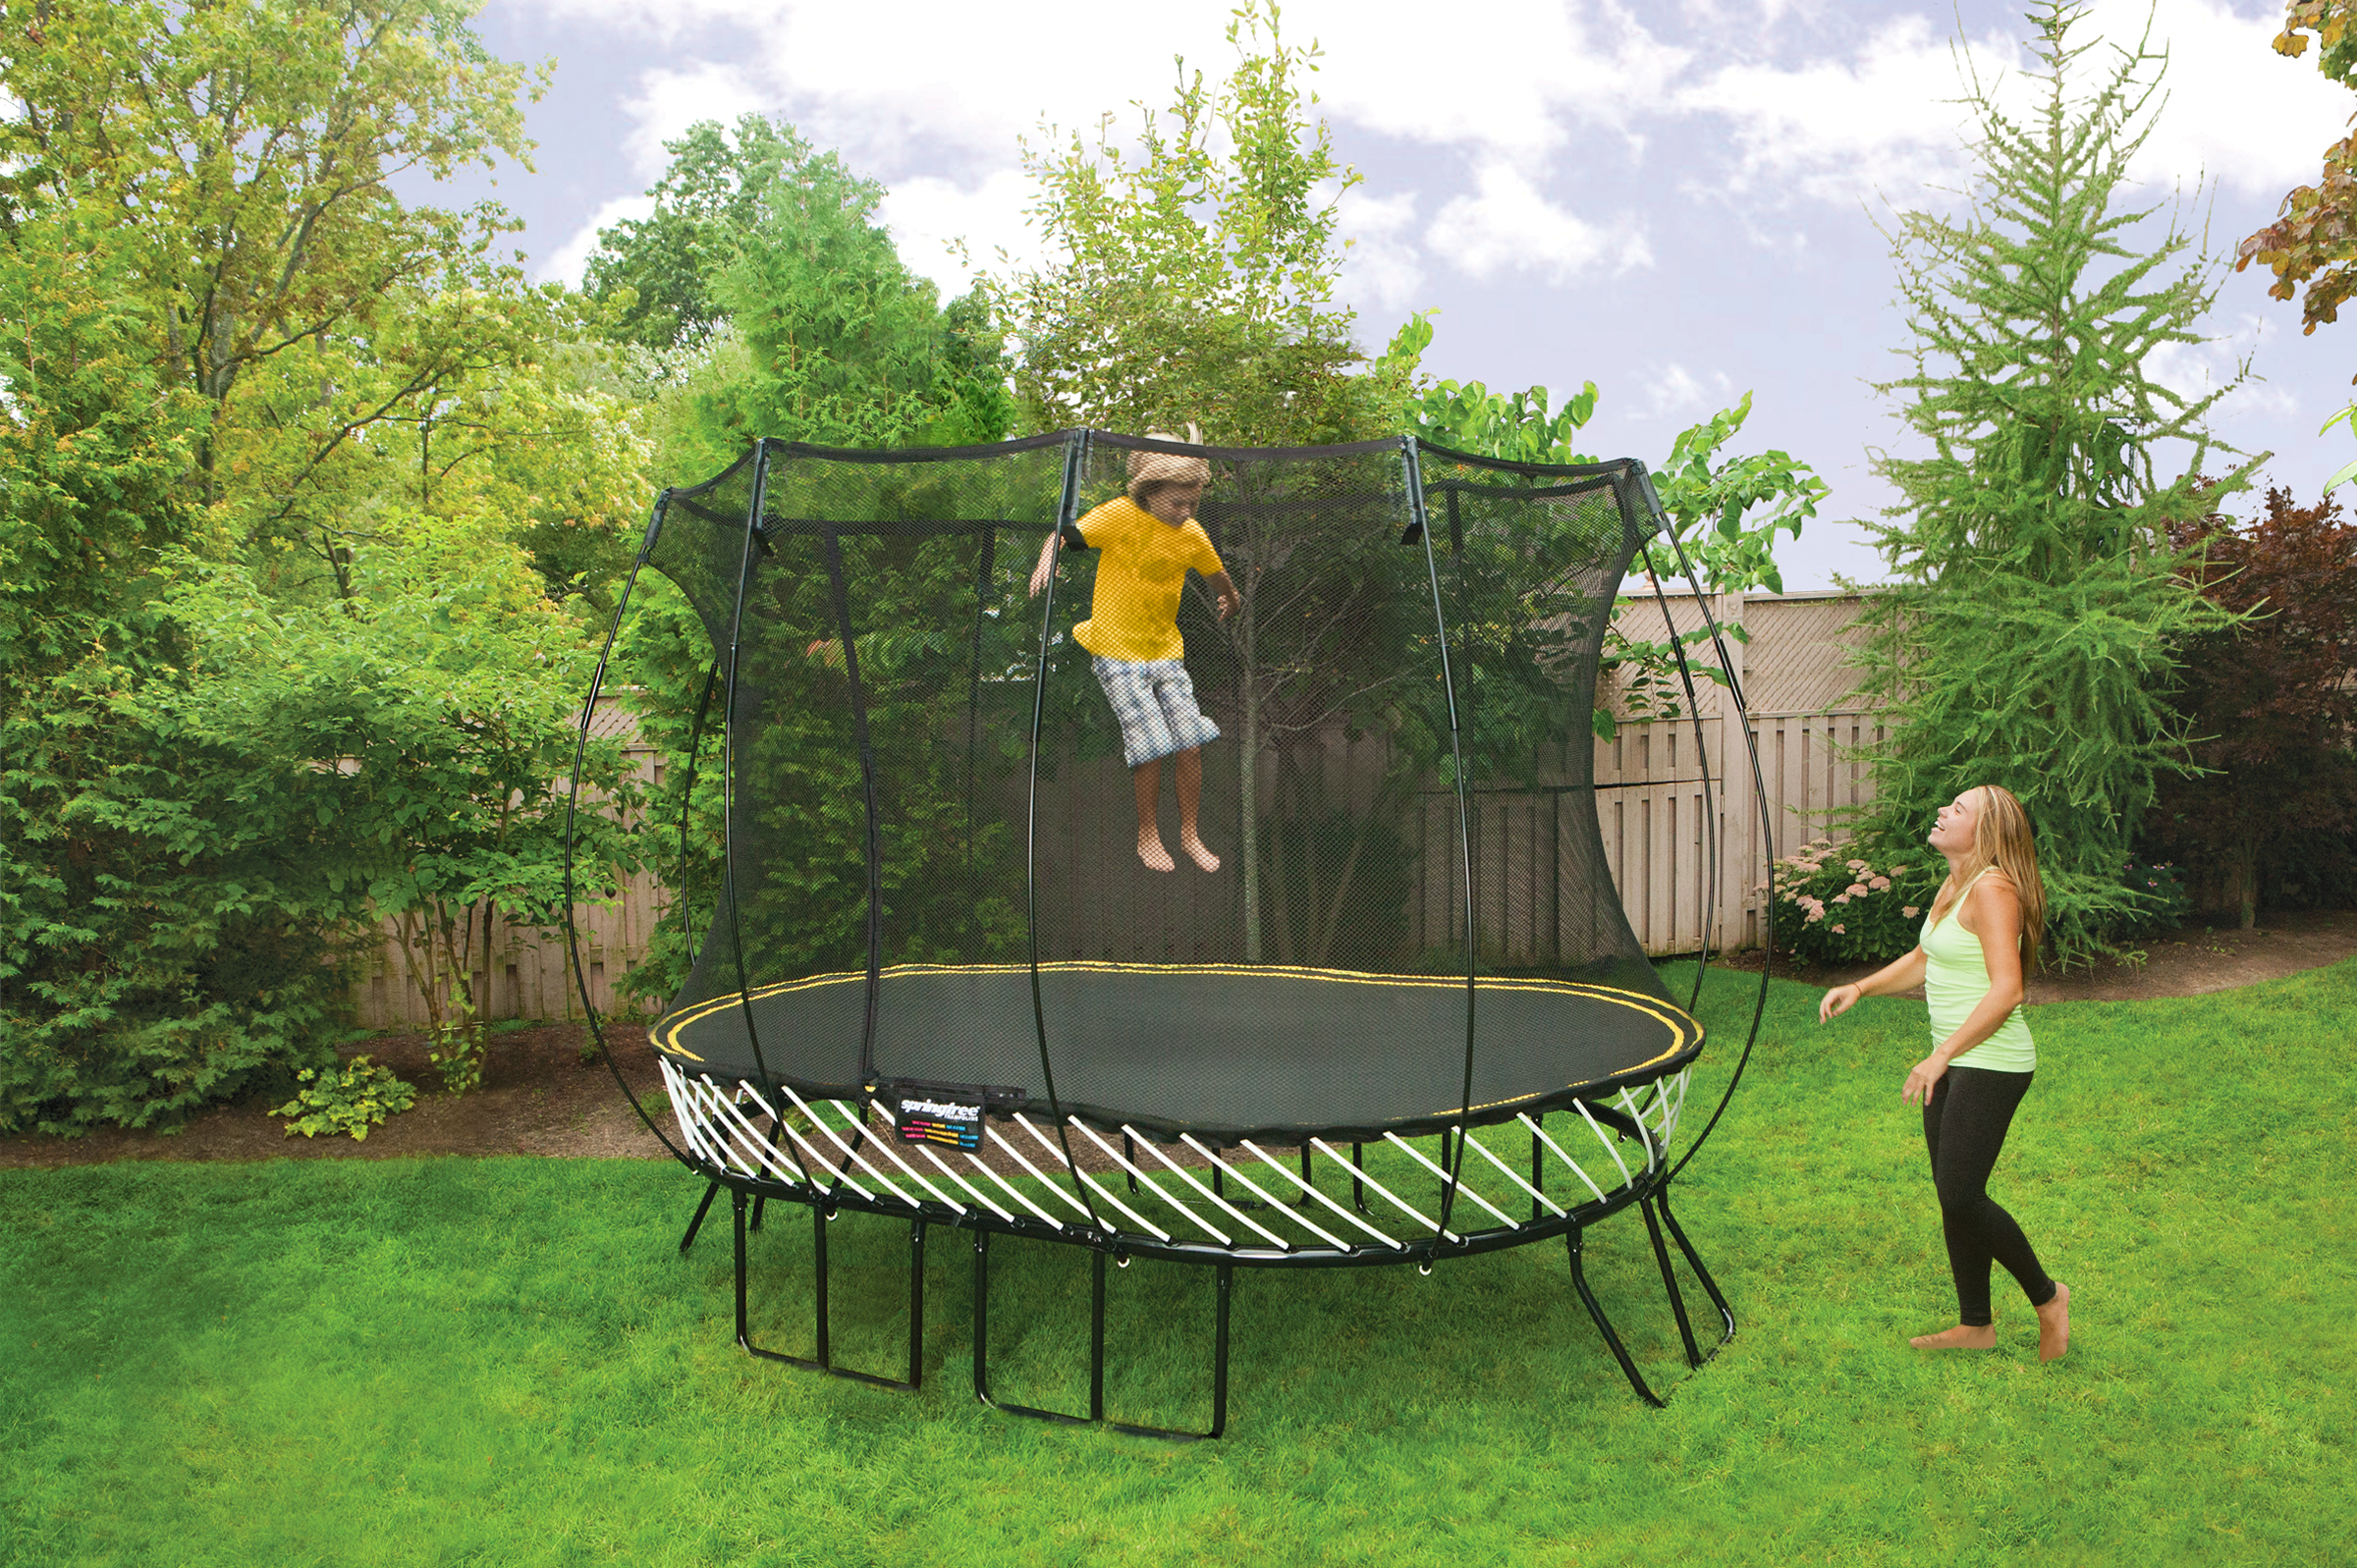 nw kids is giving away a springfree trampoline the world u0027s safest